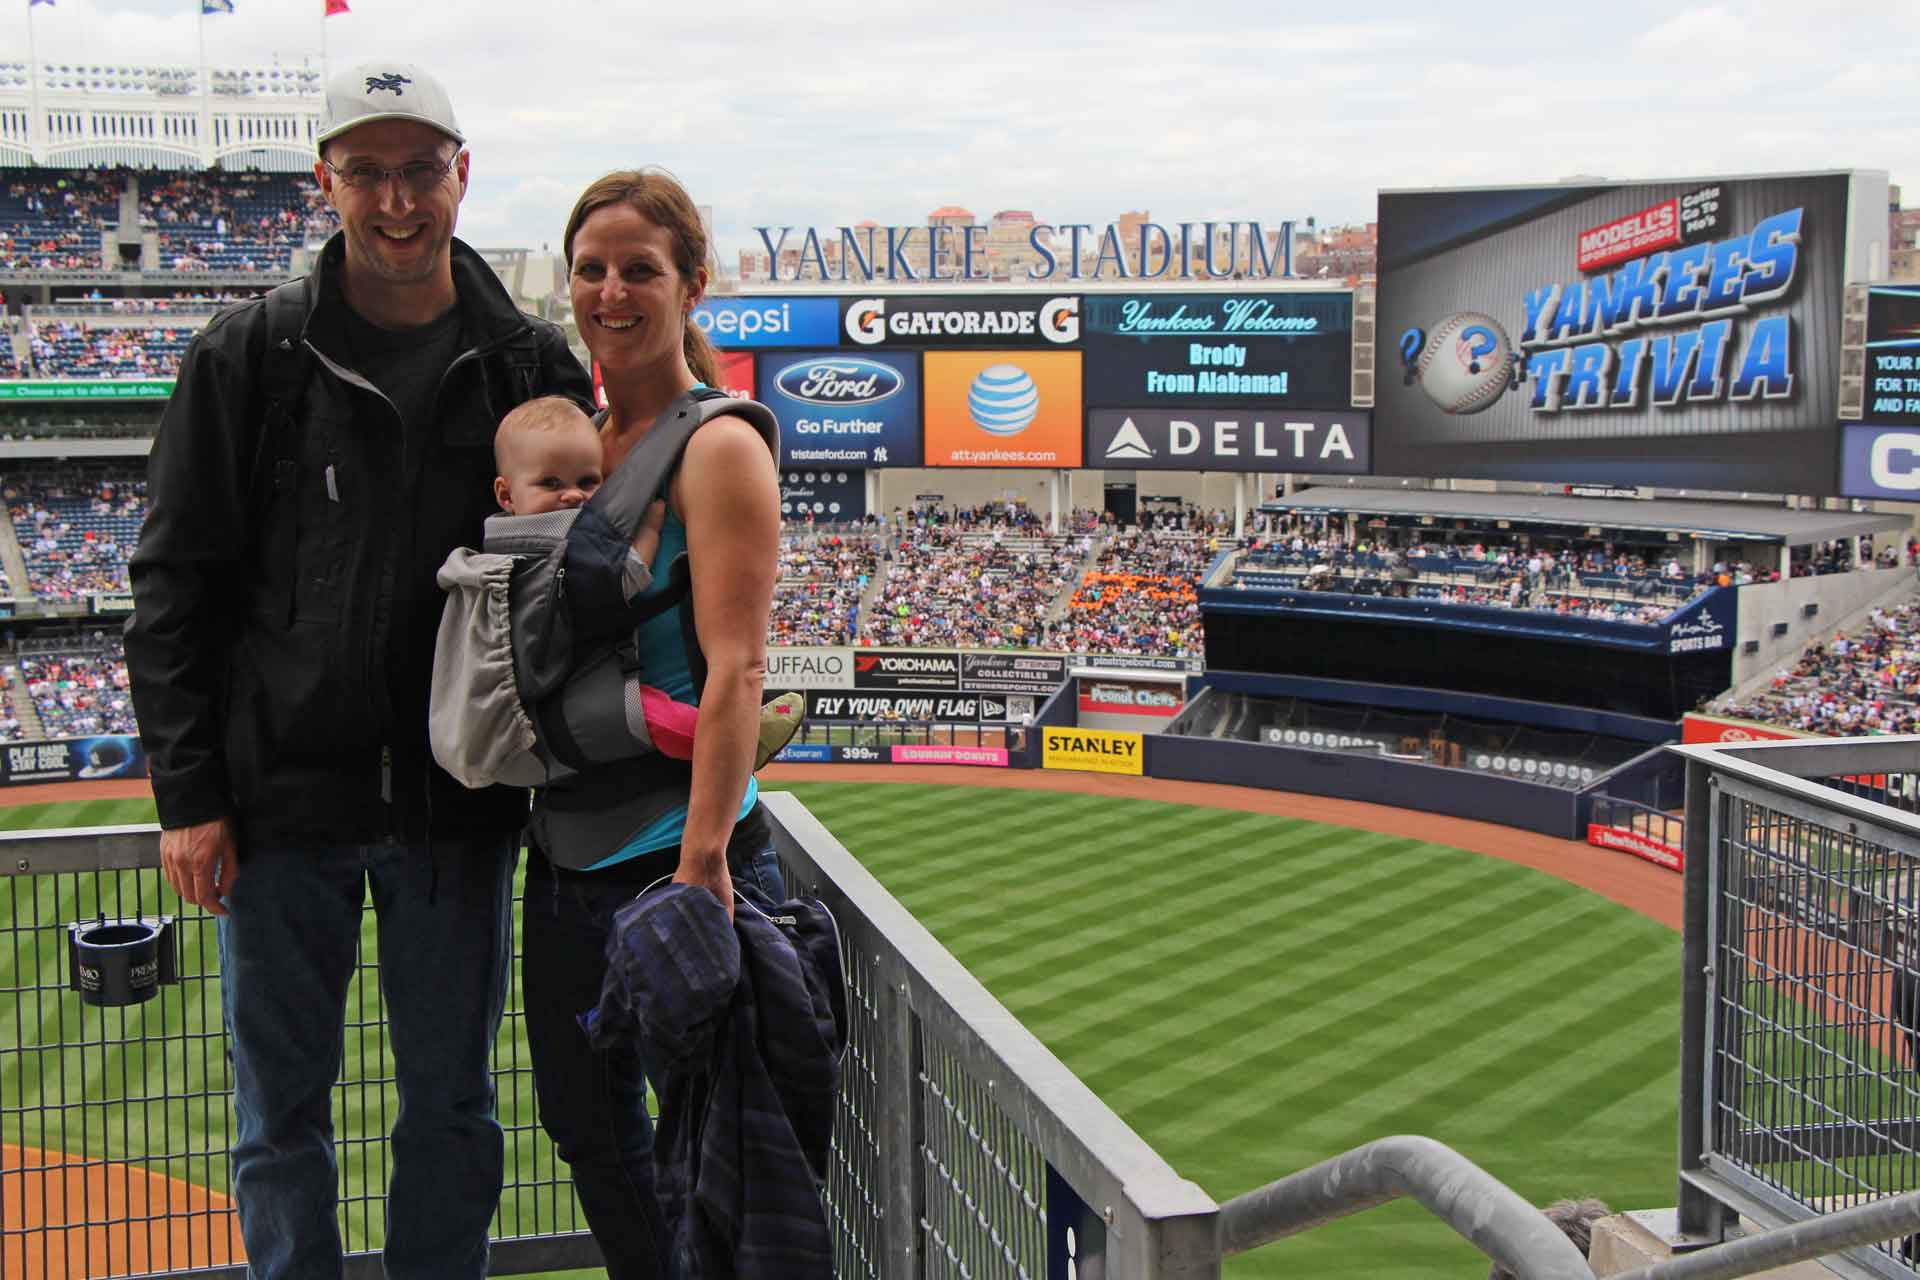 New York Yankees game with a baby